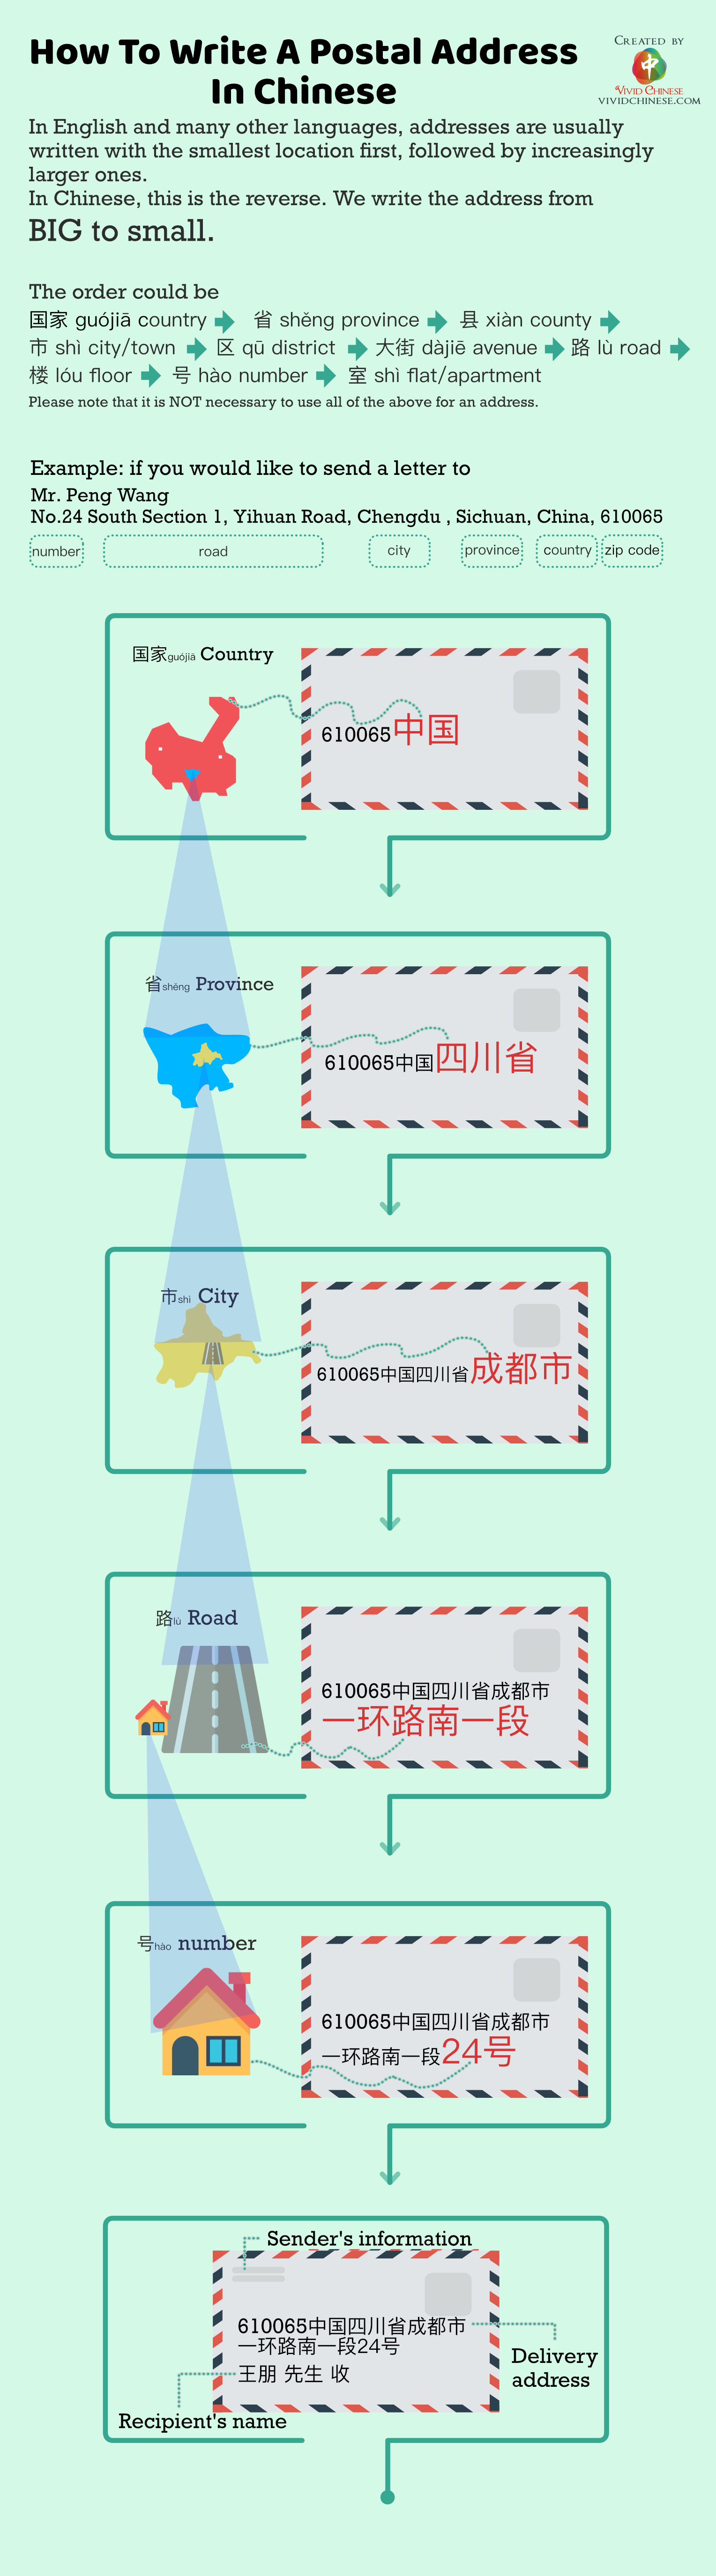 Simplified Chinese Version Infographic